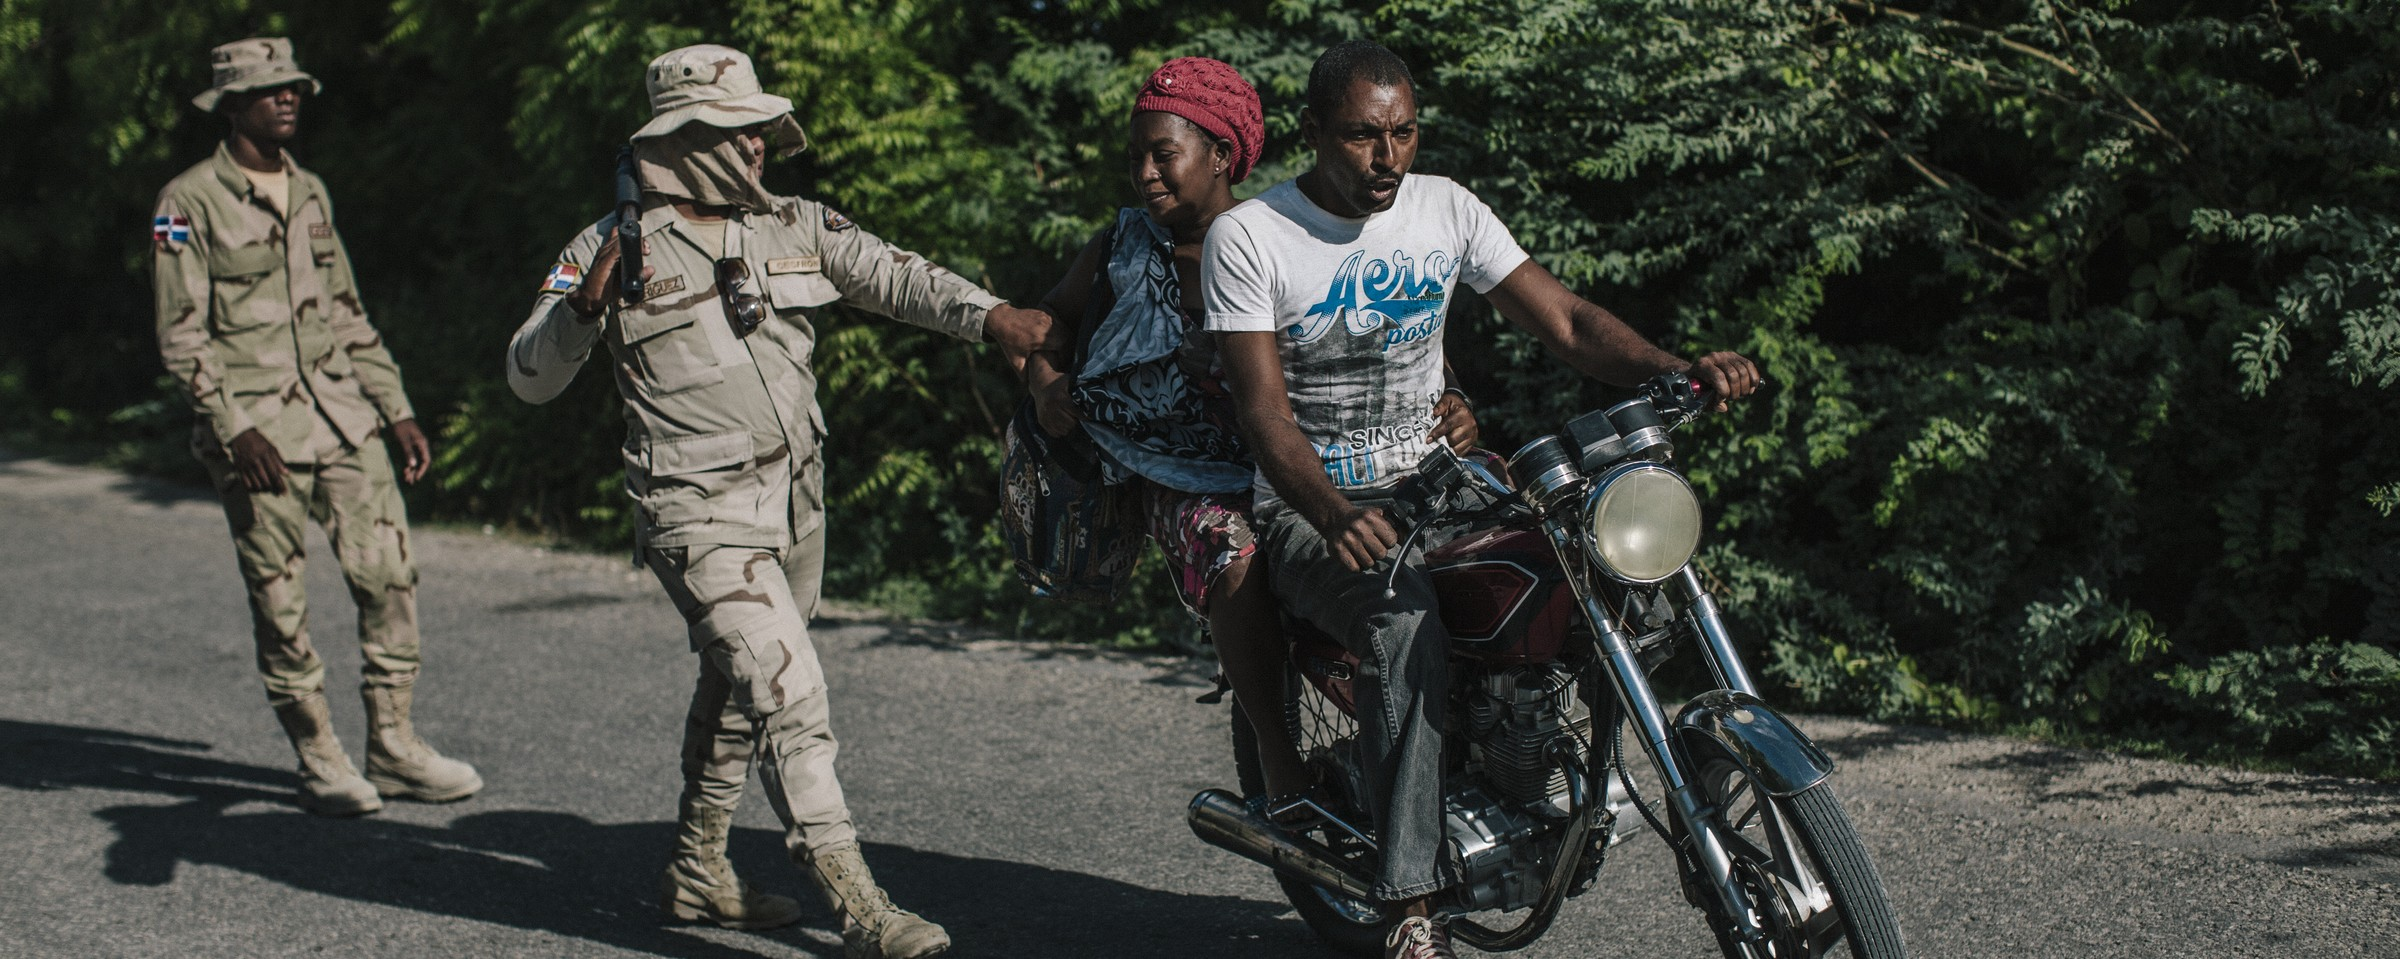 In Photos: Housing the Men and Women Being Deported From the Dominican Republic